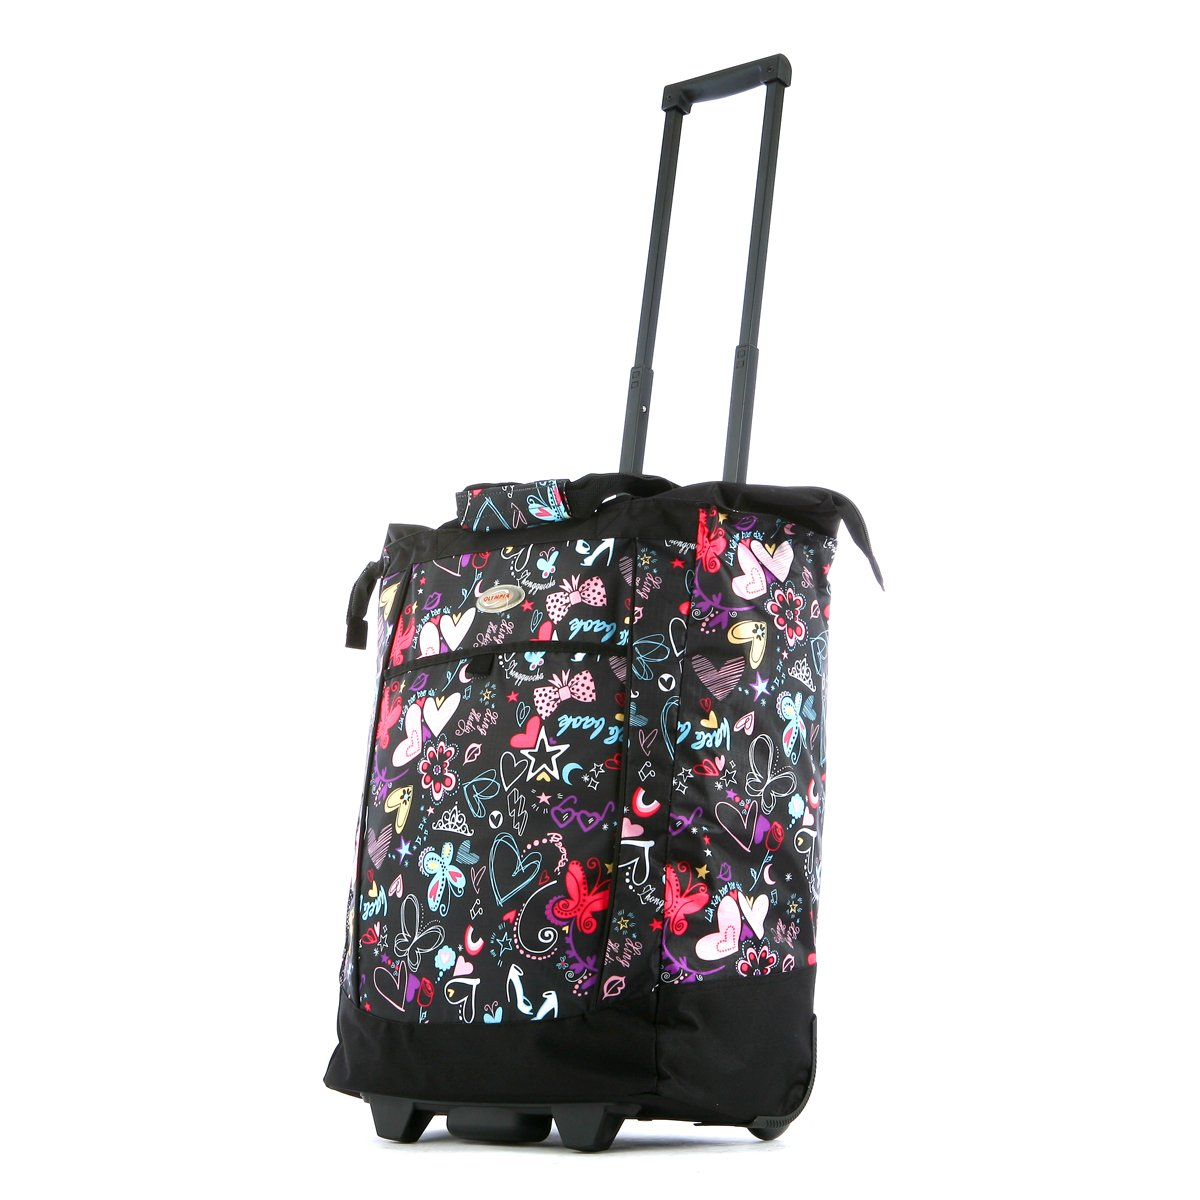 Olympia Fashion Rolling Shopper Tote - Butterfly, 2300 cu. in.